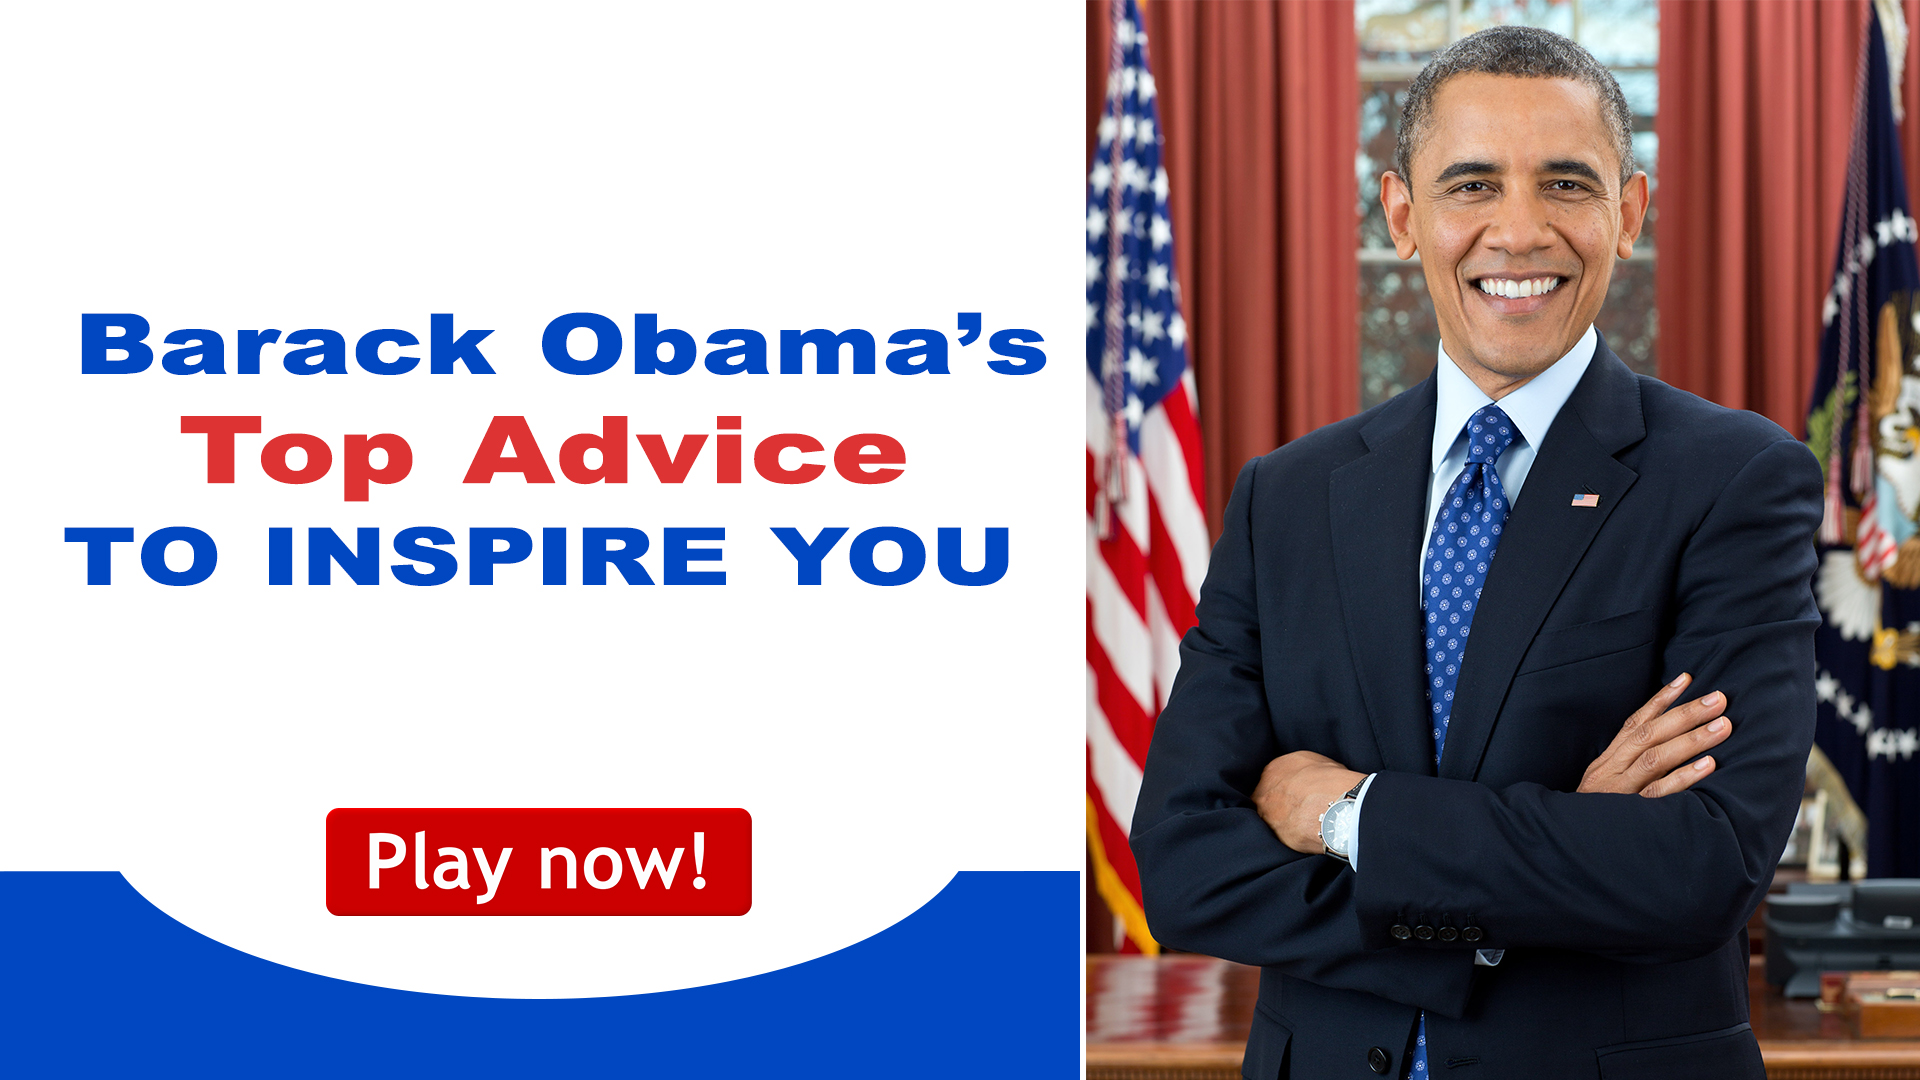 A-classes daily Inspiration - Barack Obama's Top Advice To Inspire You